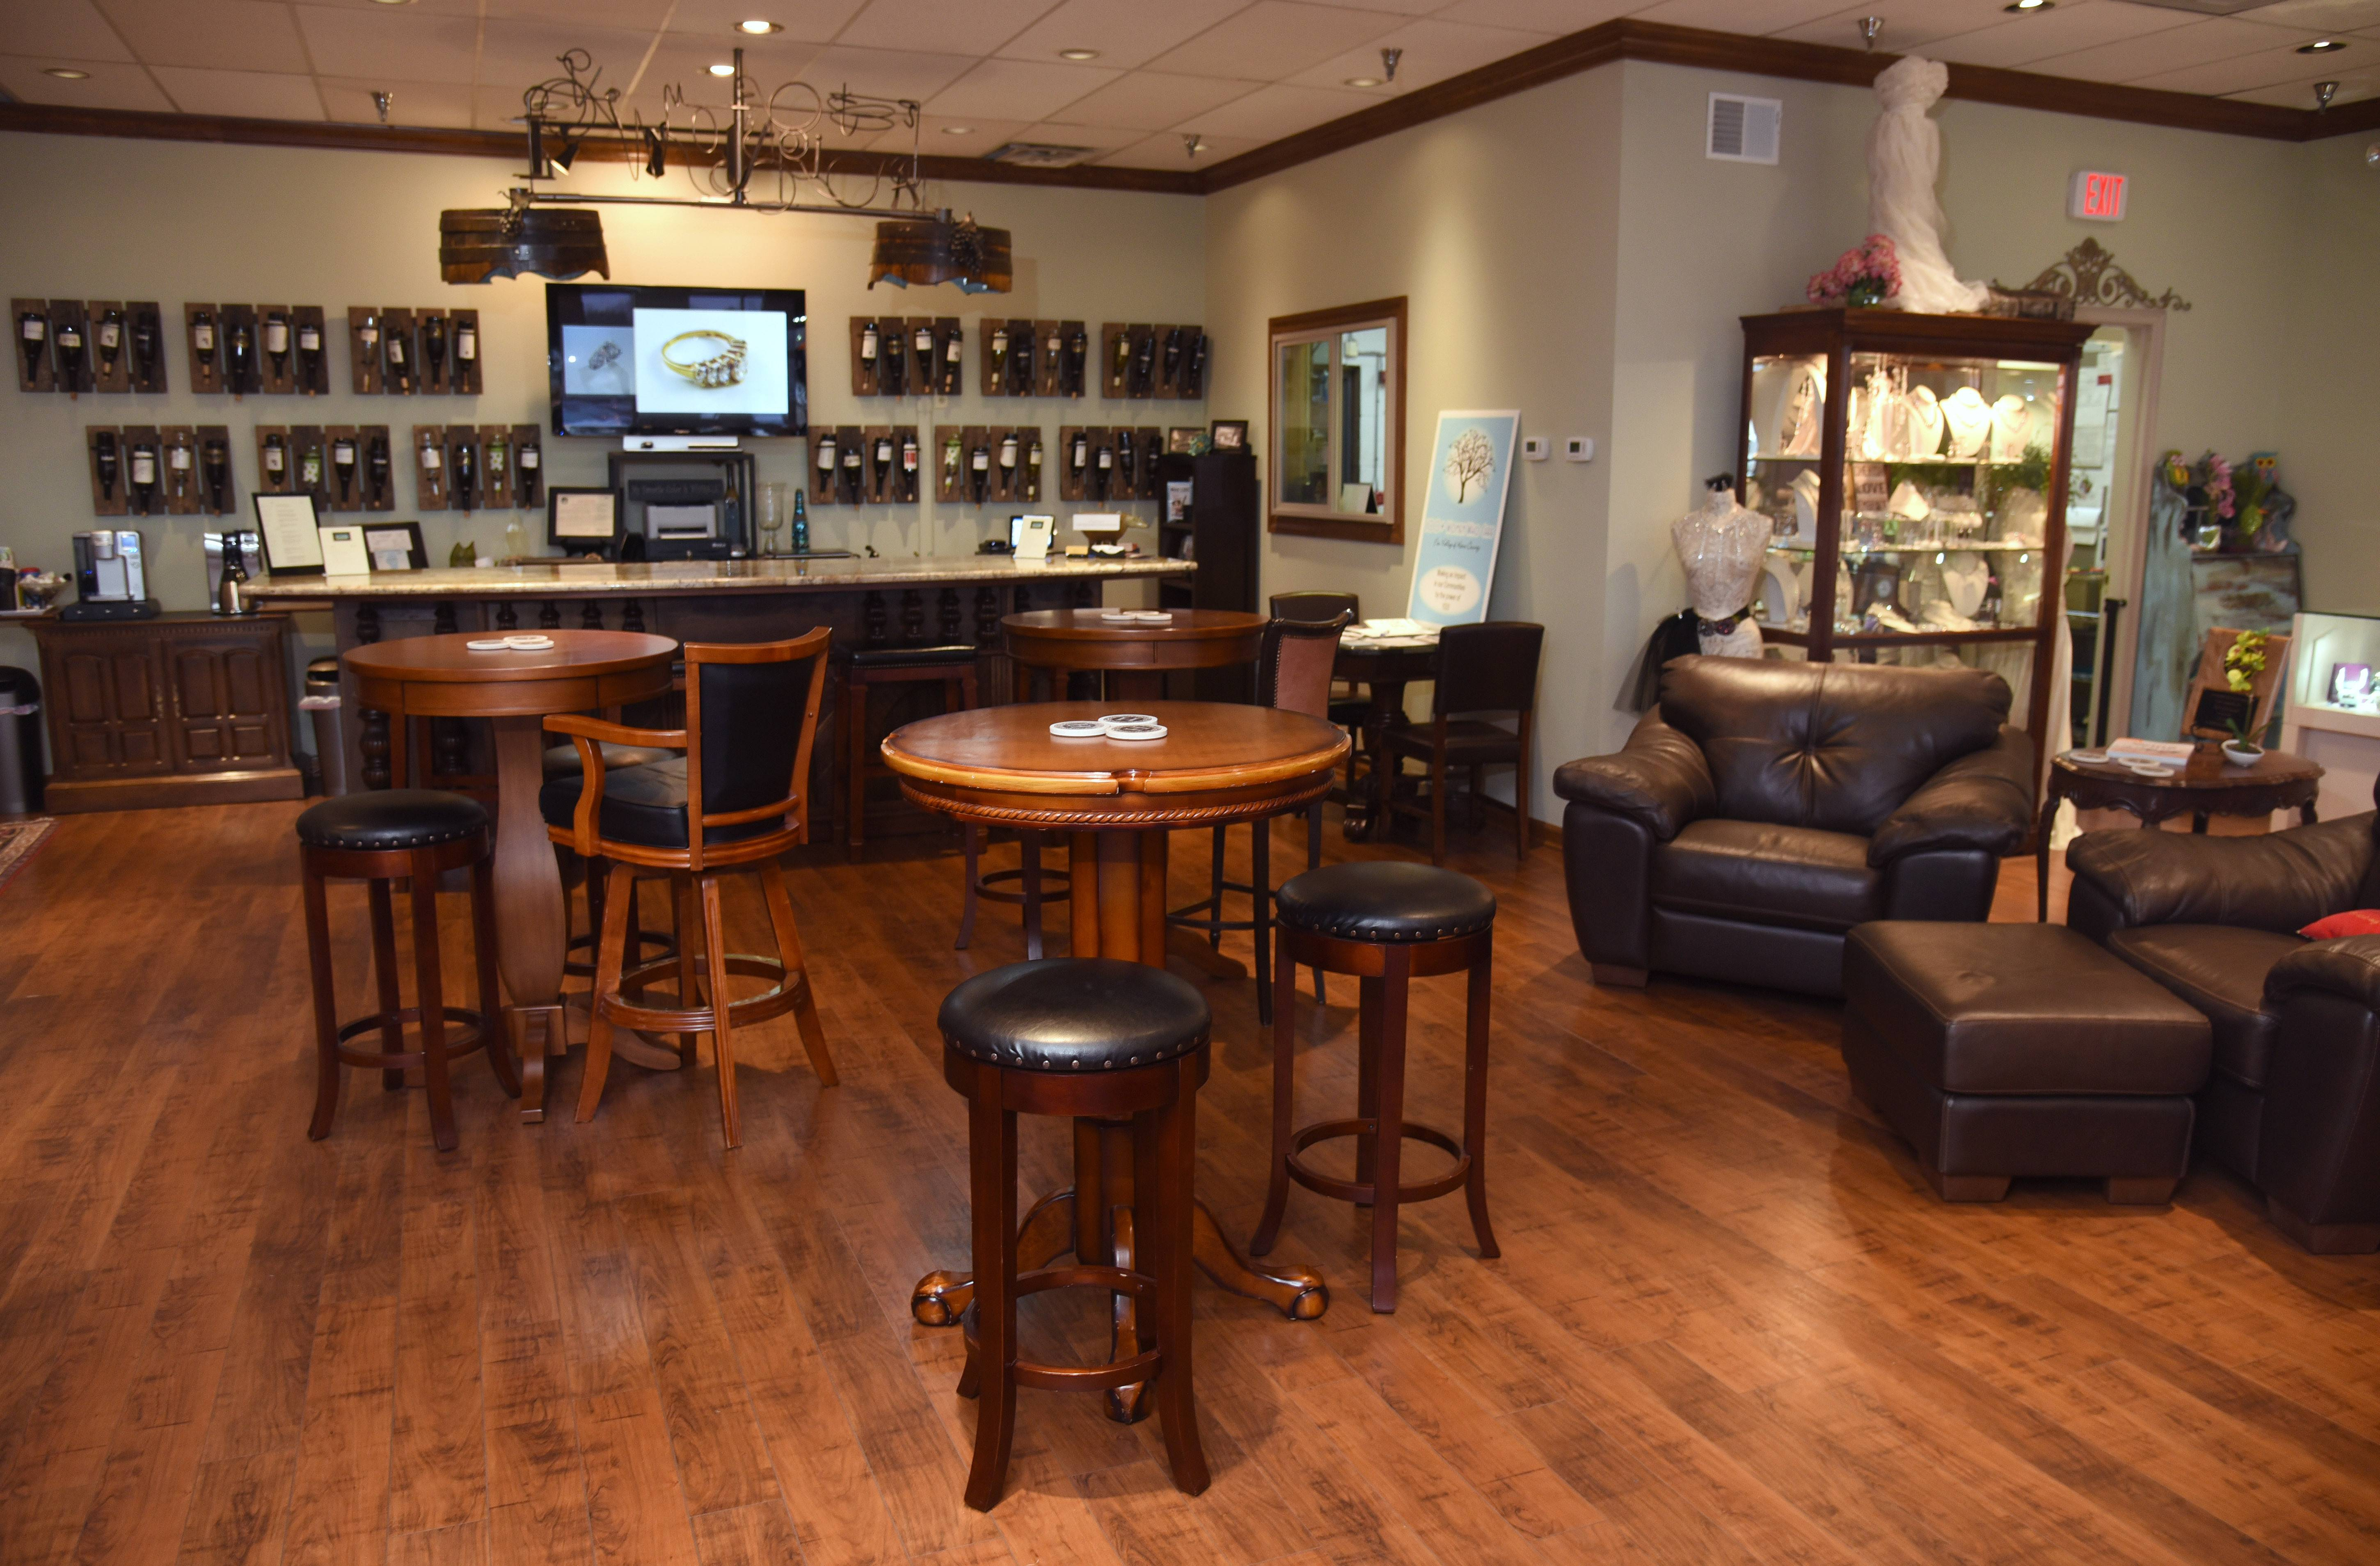 Many businesses are seeking ways to coordinate alcohol consumption with their services, as K. Hollis Jewelers in Batavia did by adding a wine bar.